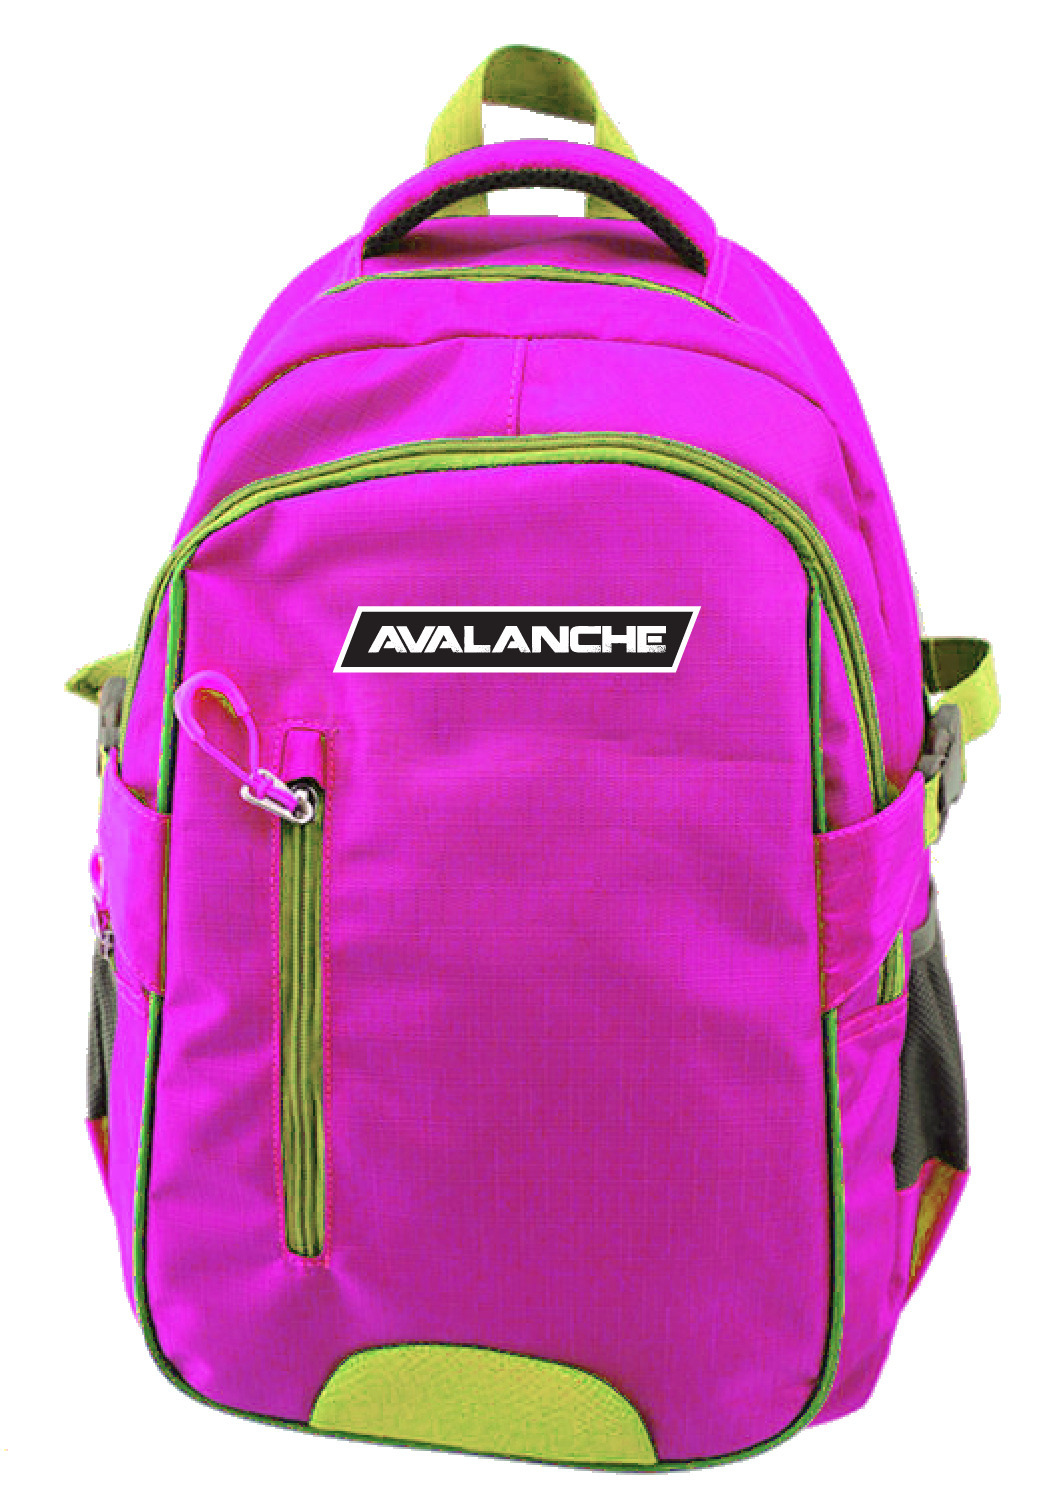 Avalanche Standard Student Backpack - Pink-Lime